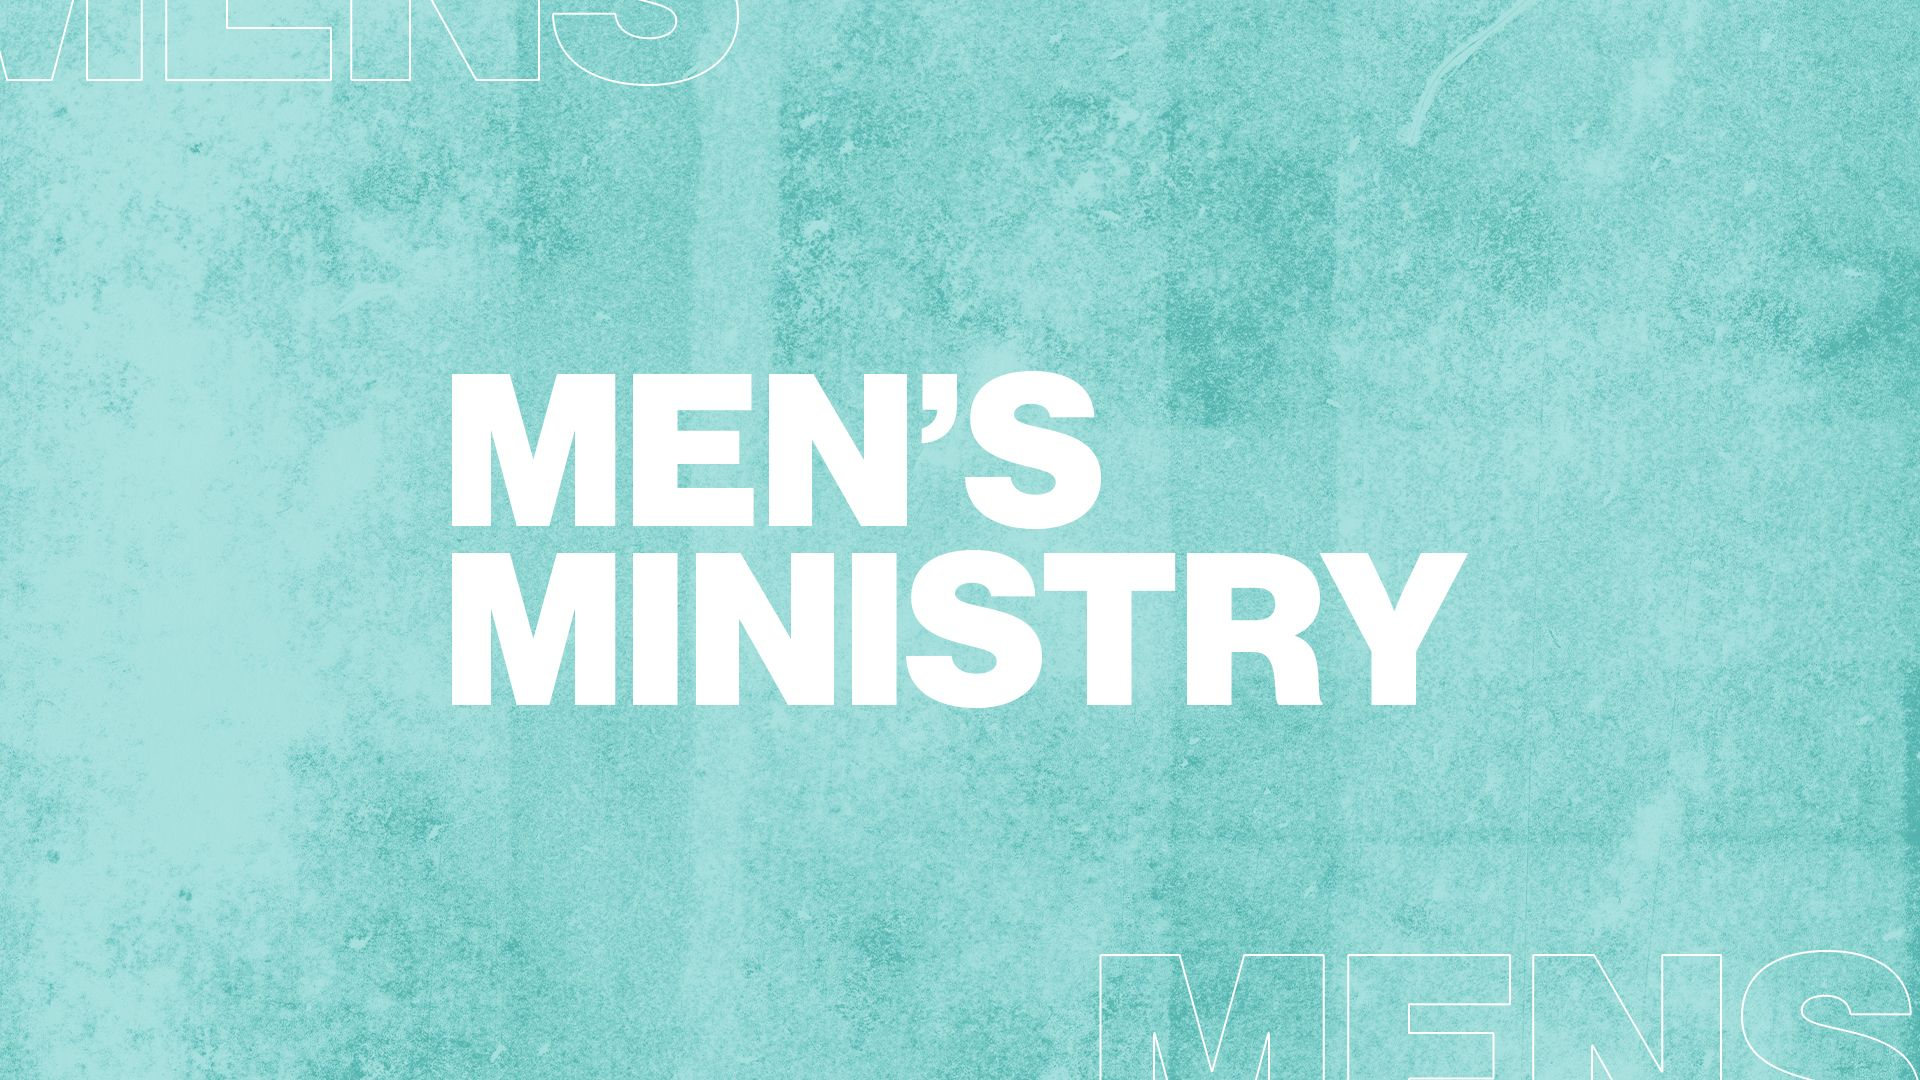 mens ministry image